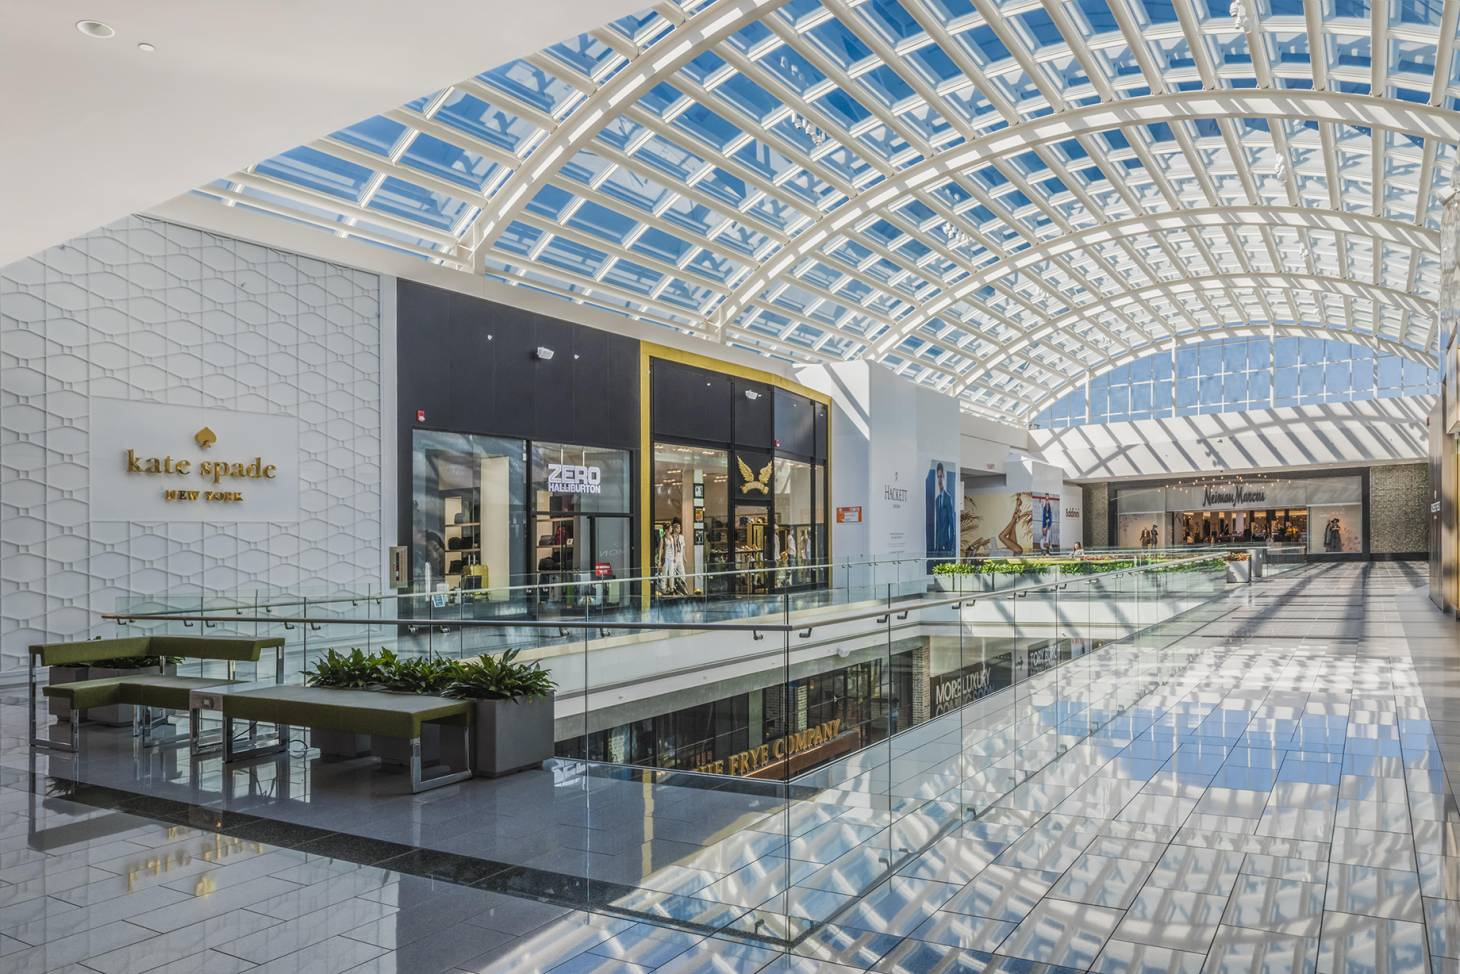 3bc0f6ab8cd Simon, GGP, DDR are top three owners of U.S. retail space in 2018 ...